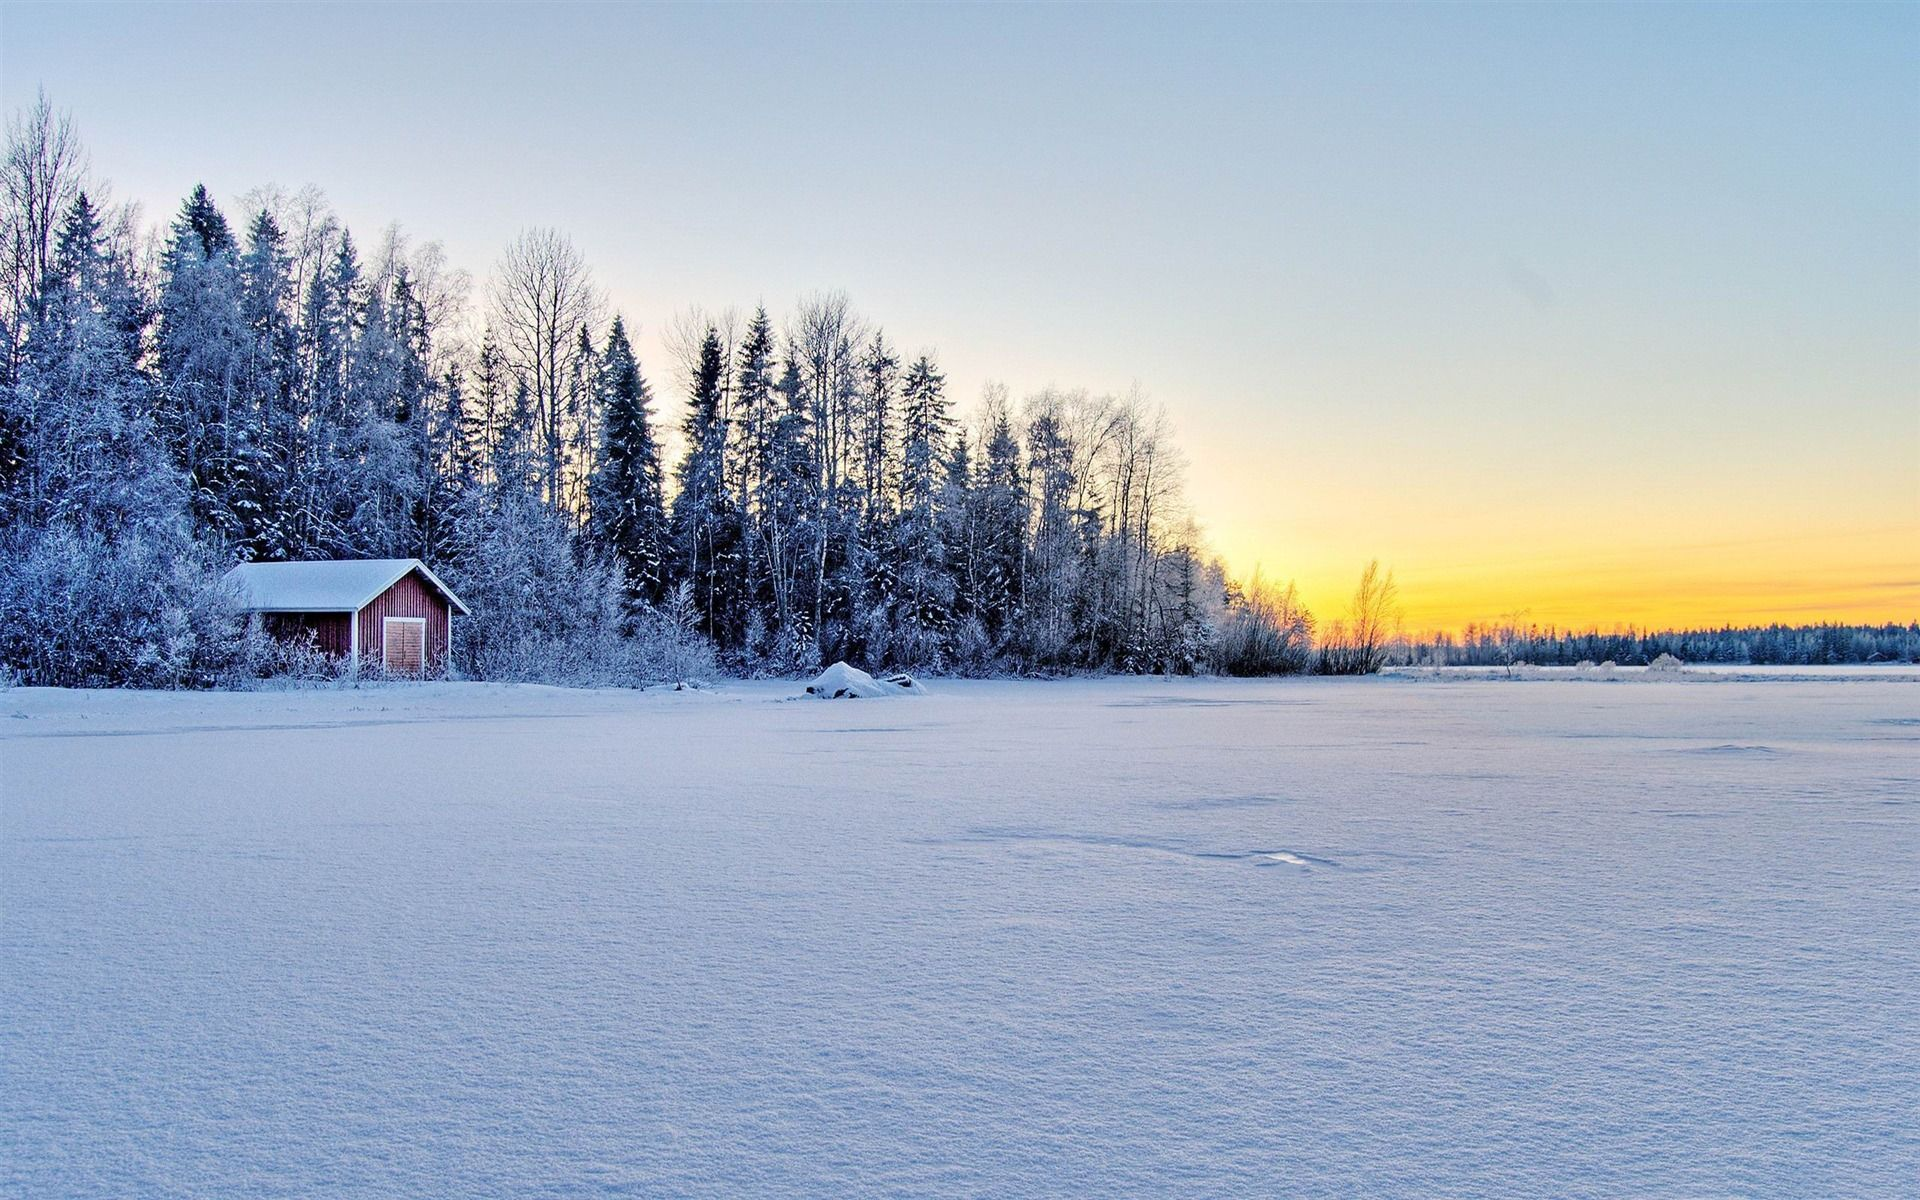 PG Winter Snow Wallpapers Awesome Winter Snow HD Wallpapers